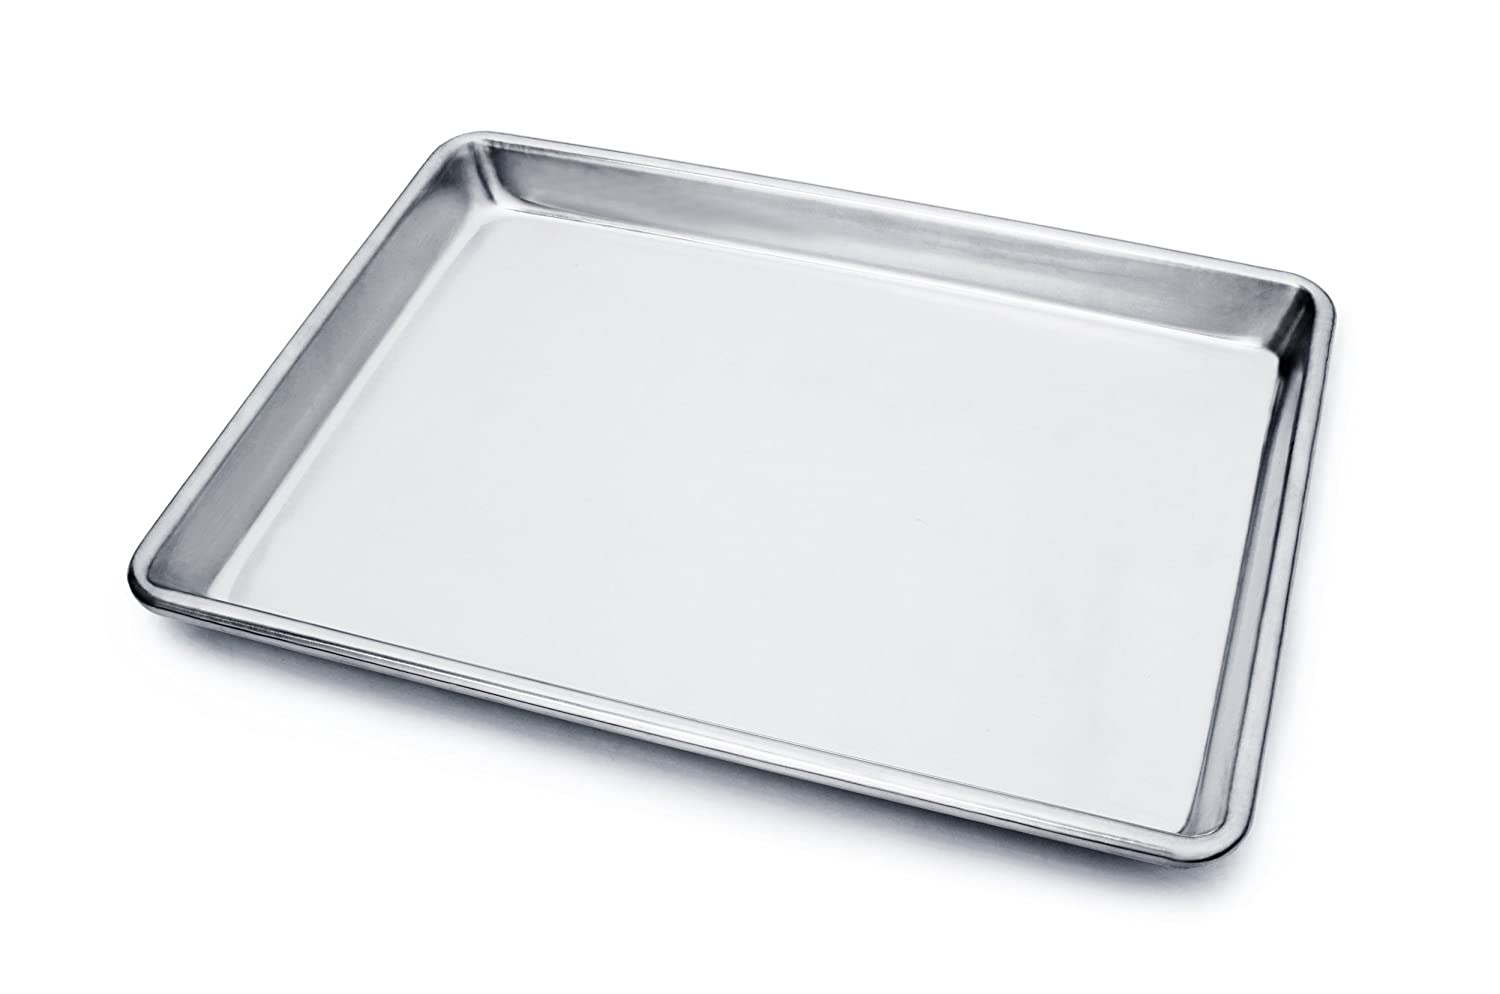 New Star Foodservice 36831 Commercial 18-Gauge Aluminum Sheet Pan, 9 x 13 x 1 inch (Quarter Size)